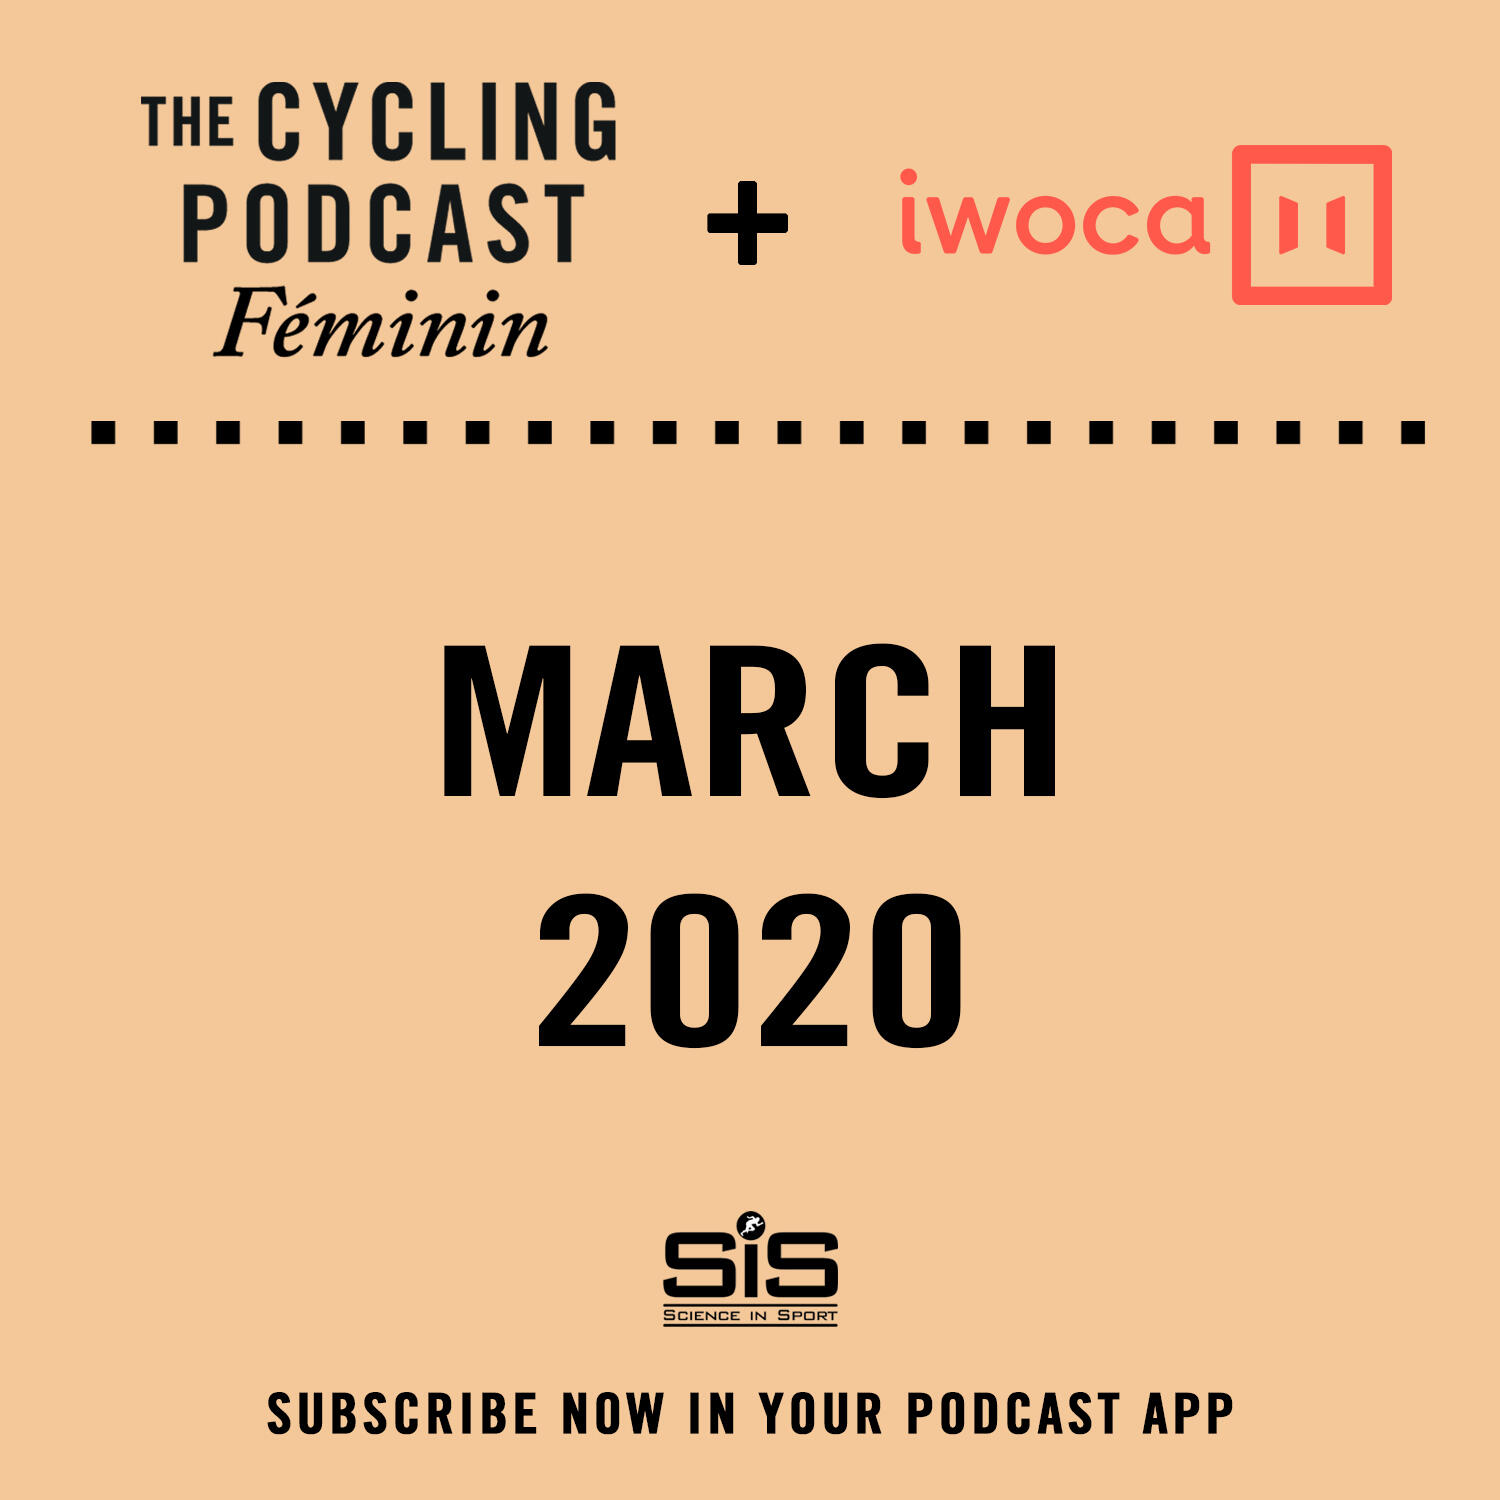 27: The Cycling Podcast Féminin   March 2020